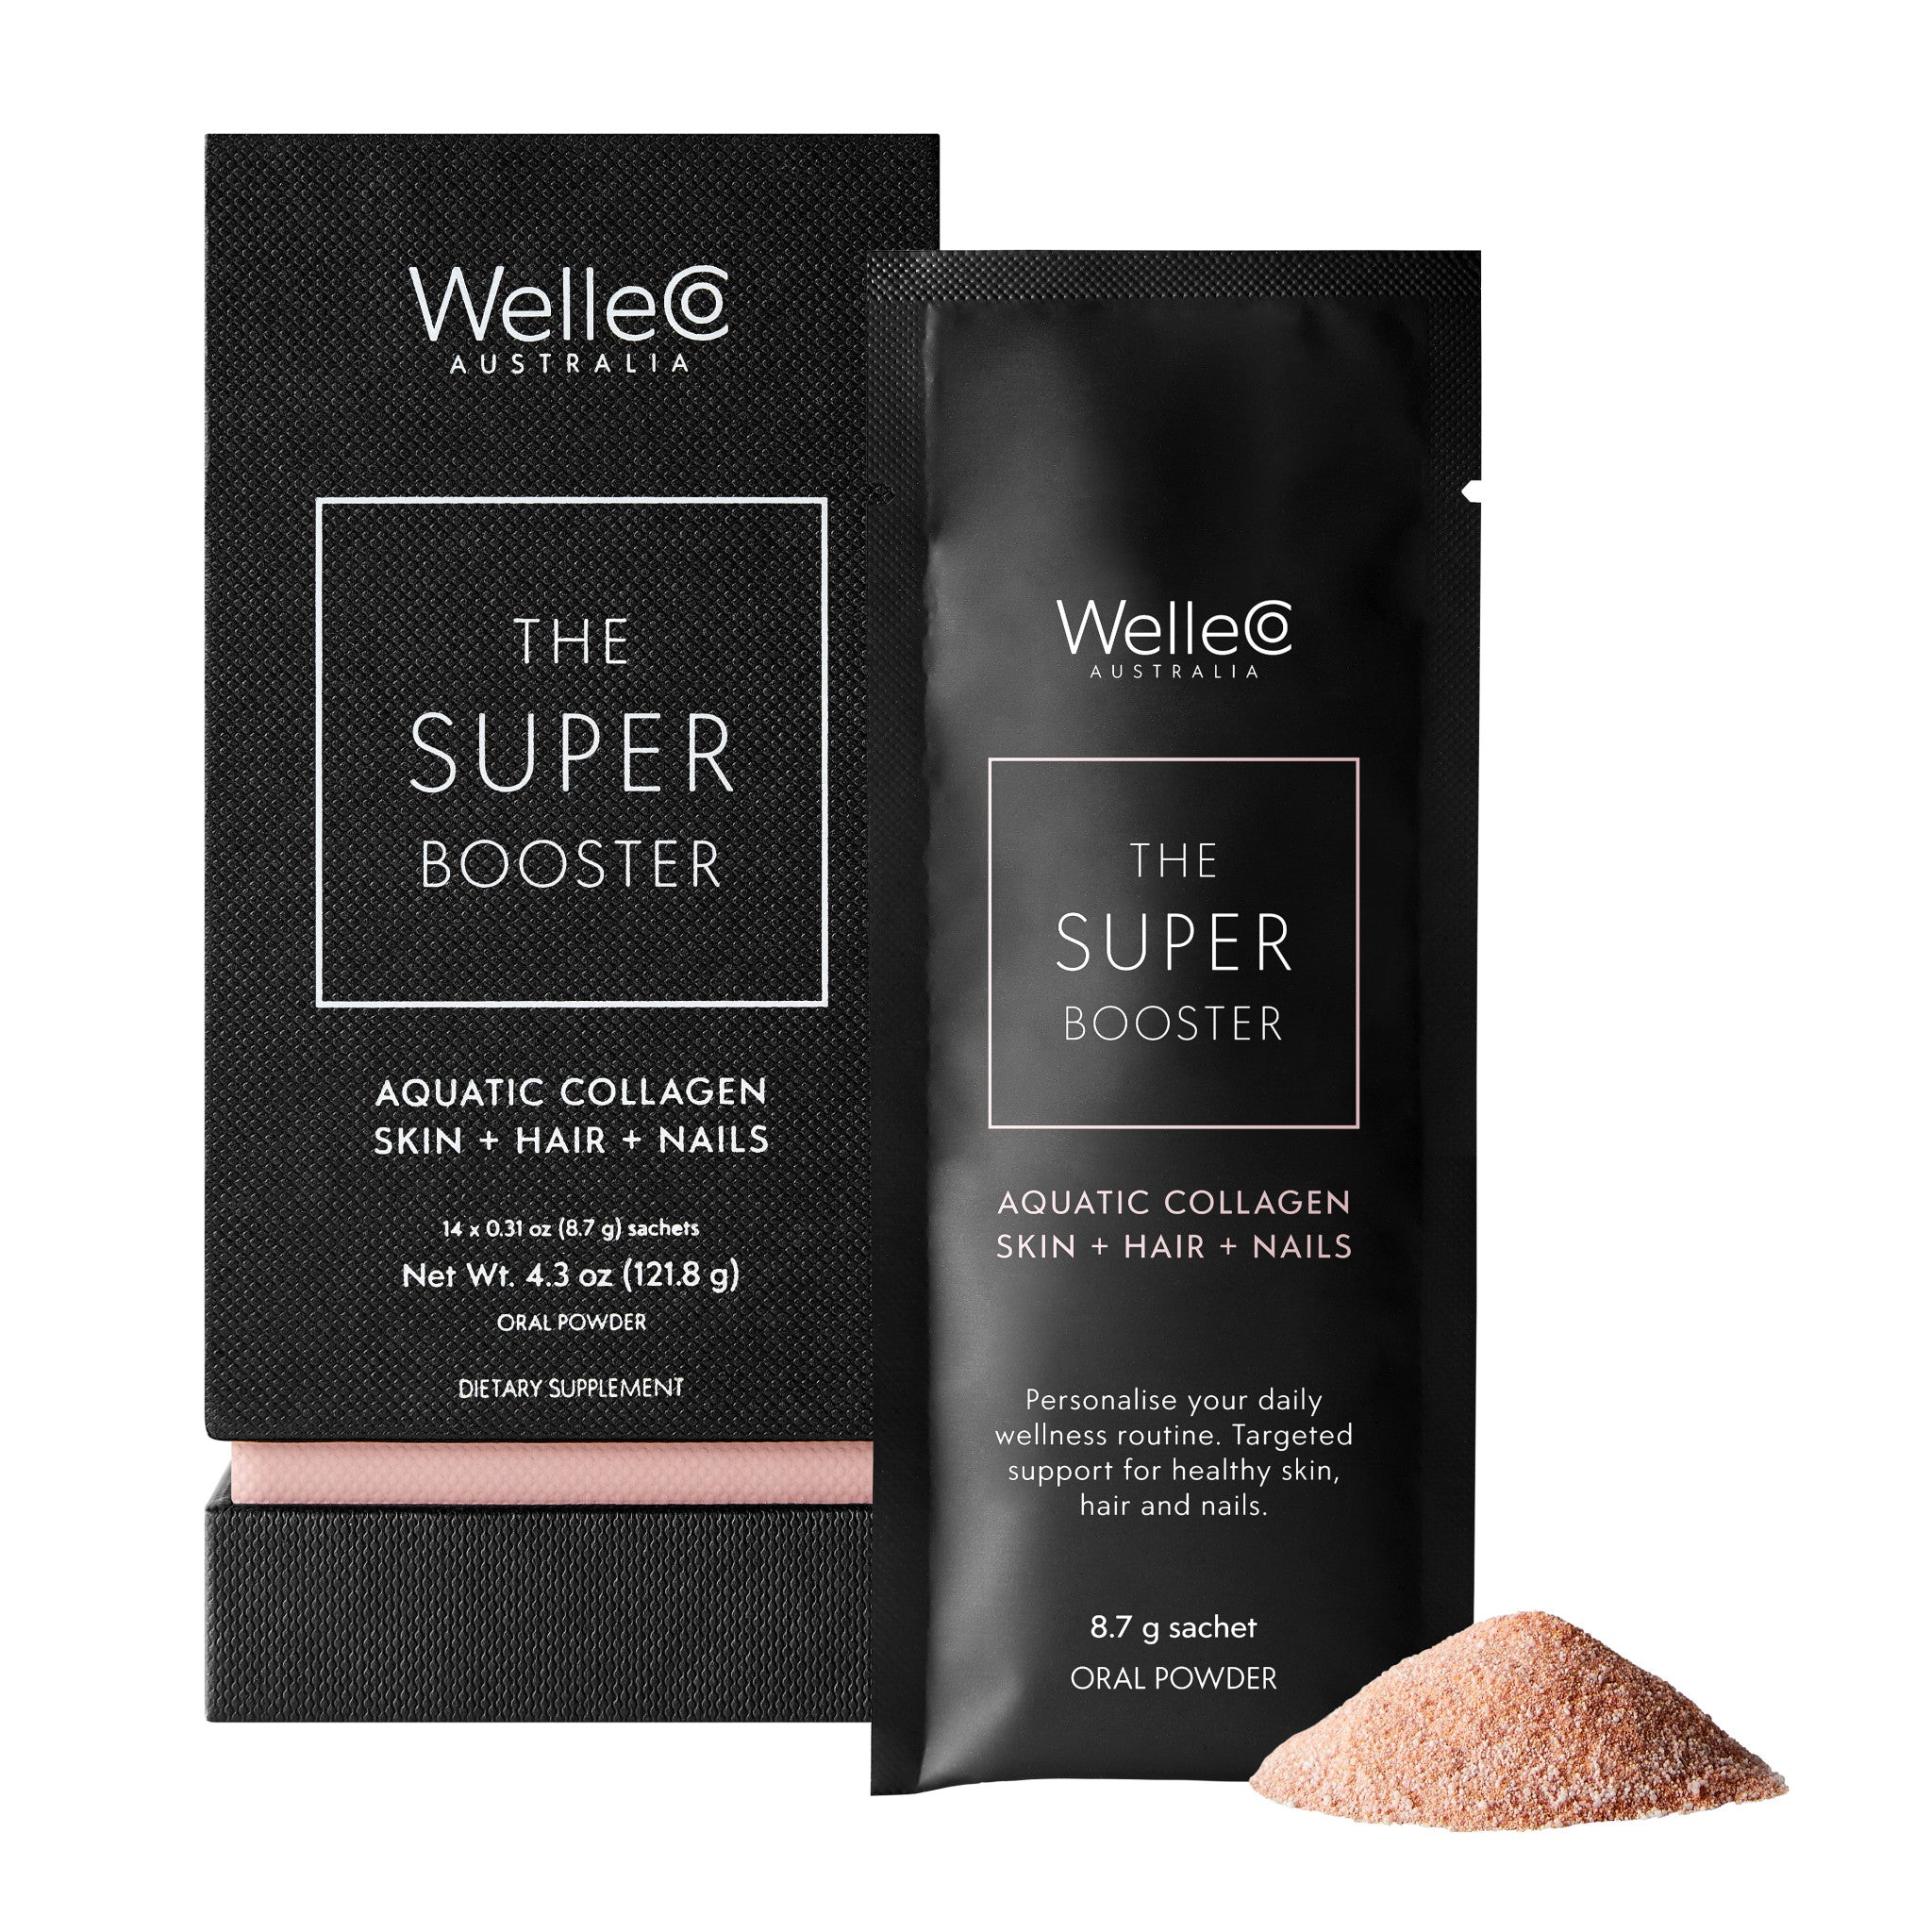 SUPER BOOSTER Aquatic Collagen Skin + Hair + Nails